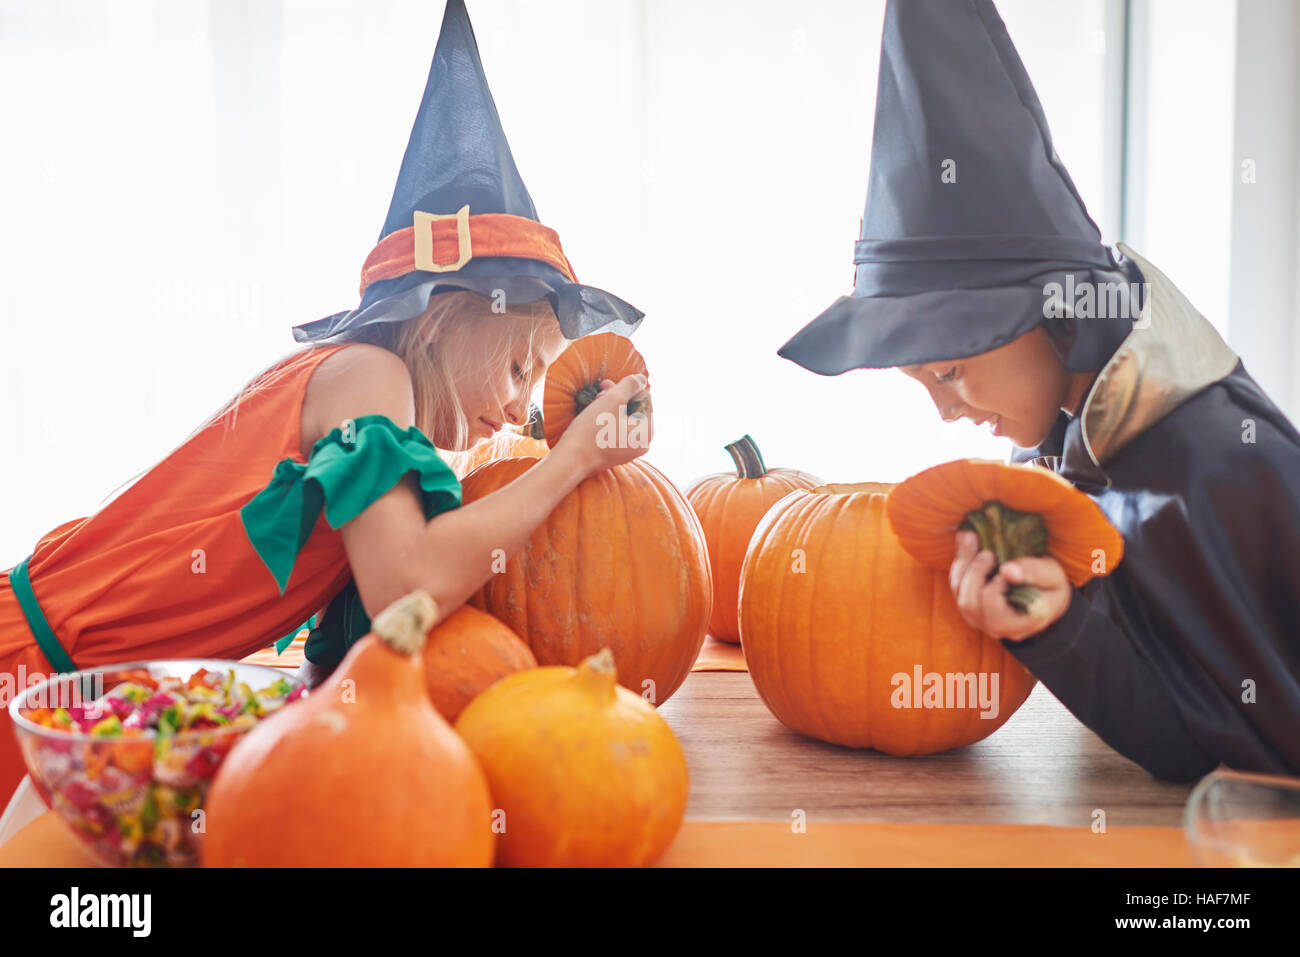 Curious children looking into the pumpkin - Stock Image